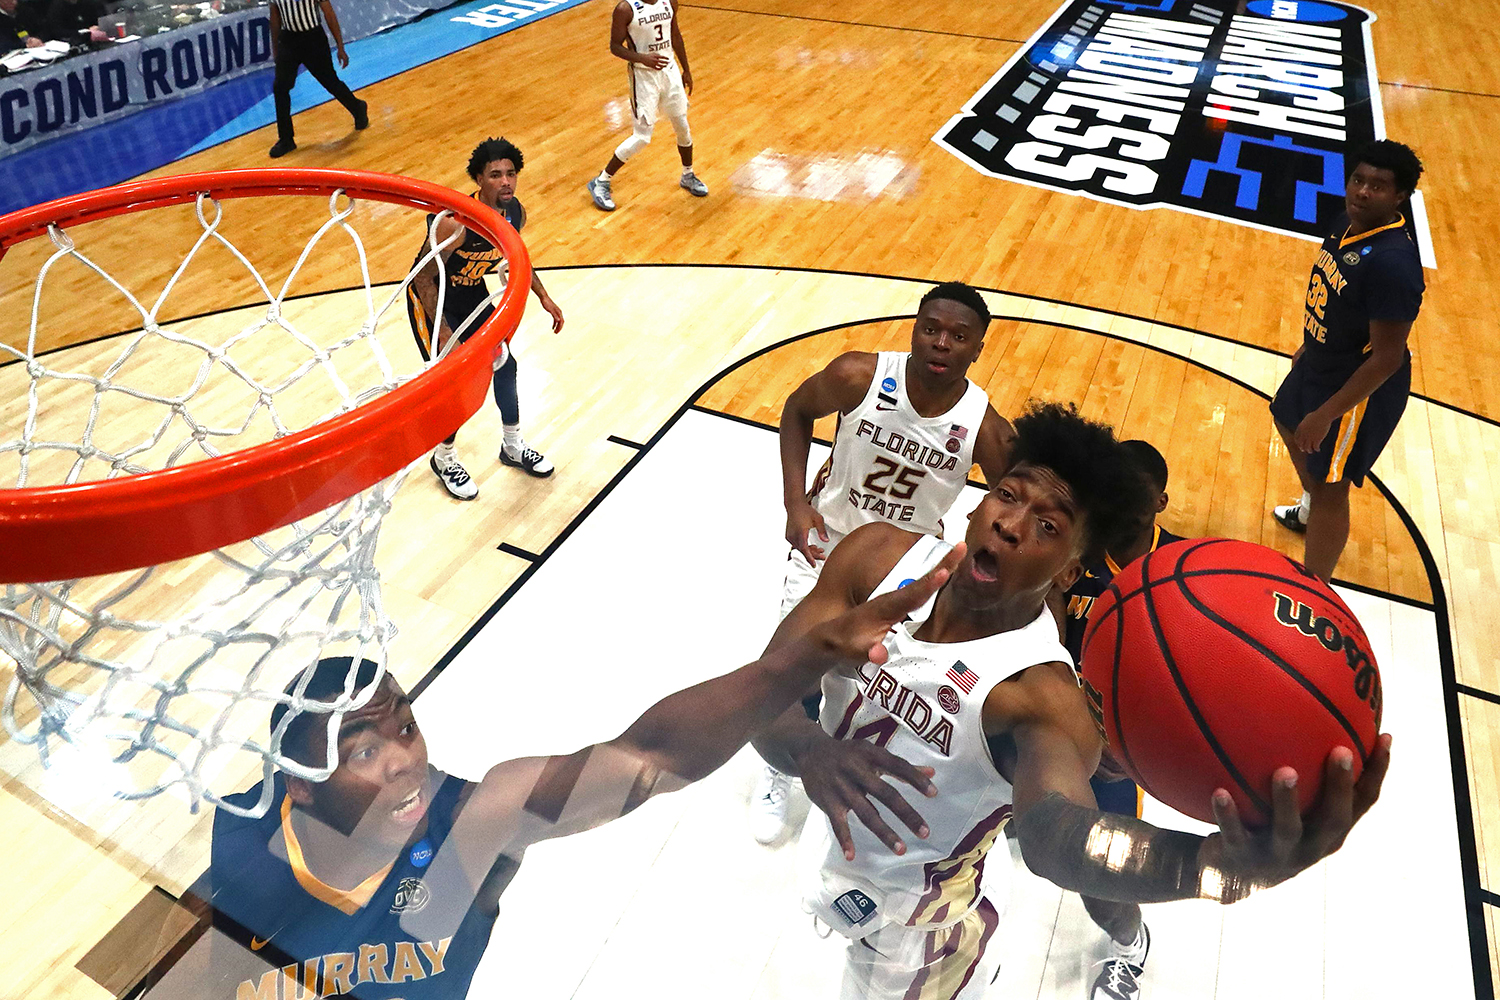 March Madness Picks Against The Spread 2018 Sweet 16: 2019 March Madness Picks: Sweet 16 Odds, Spreads, Bets To